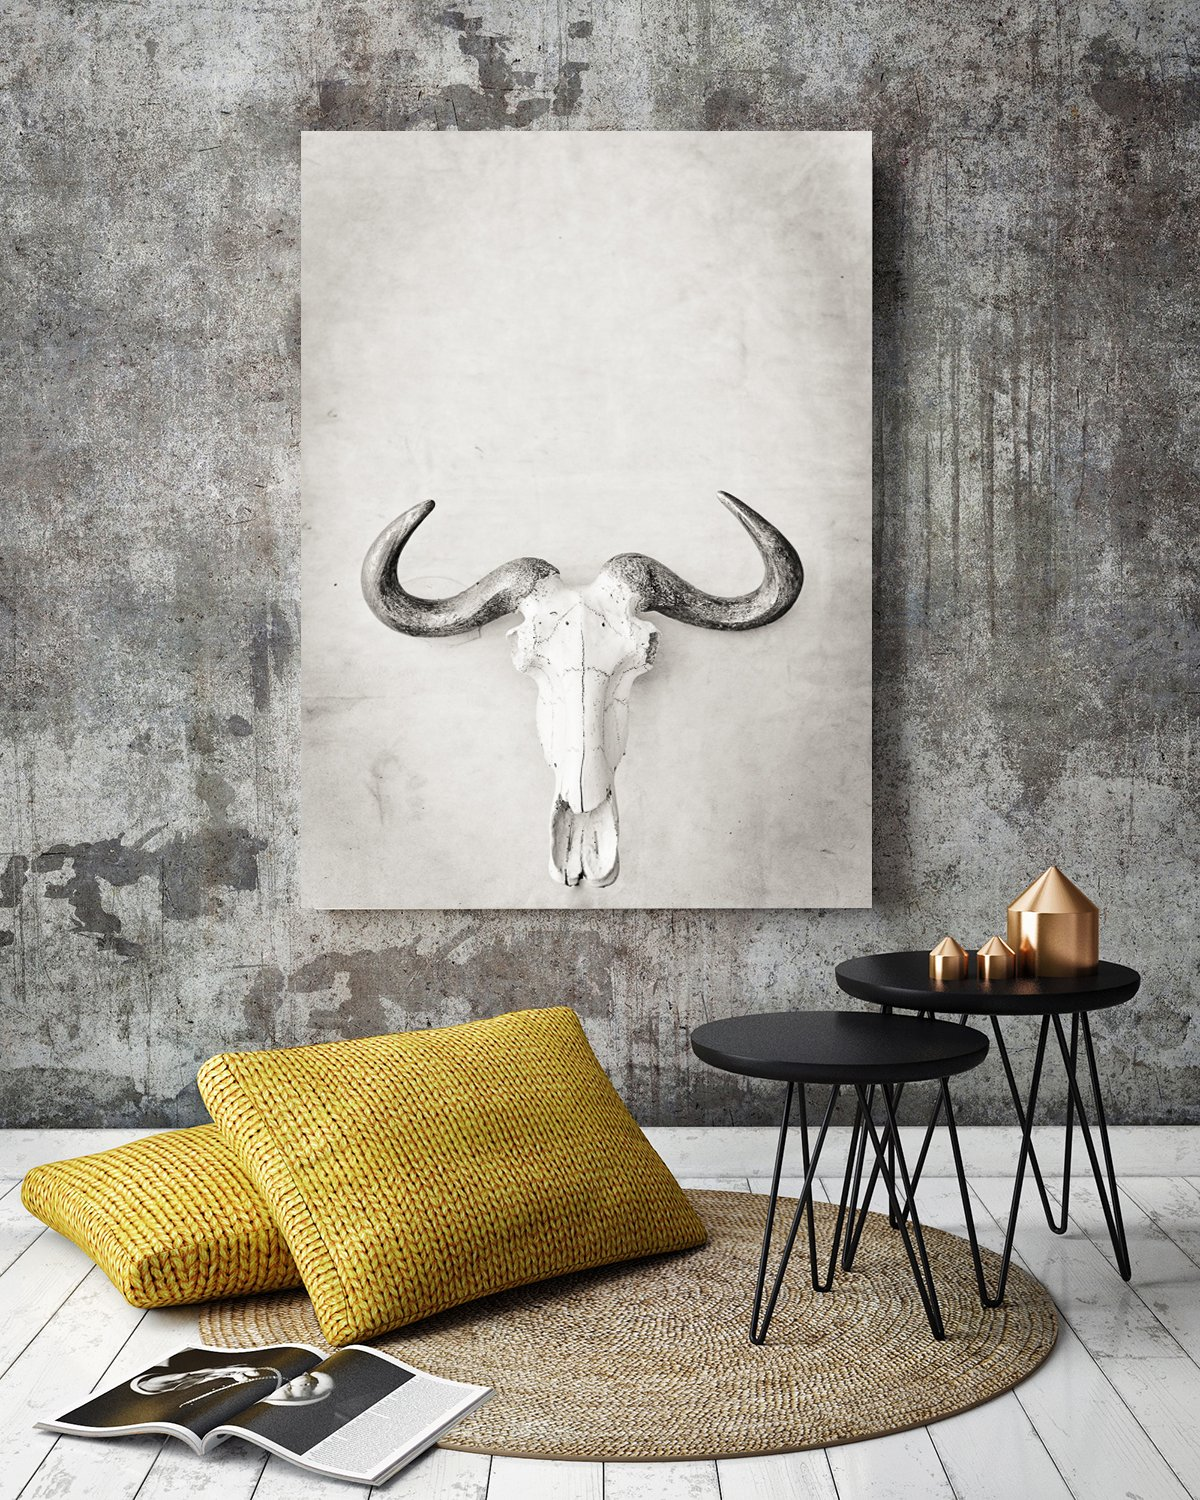 5 South African Online Furniture Stores for local Home Shopping